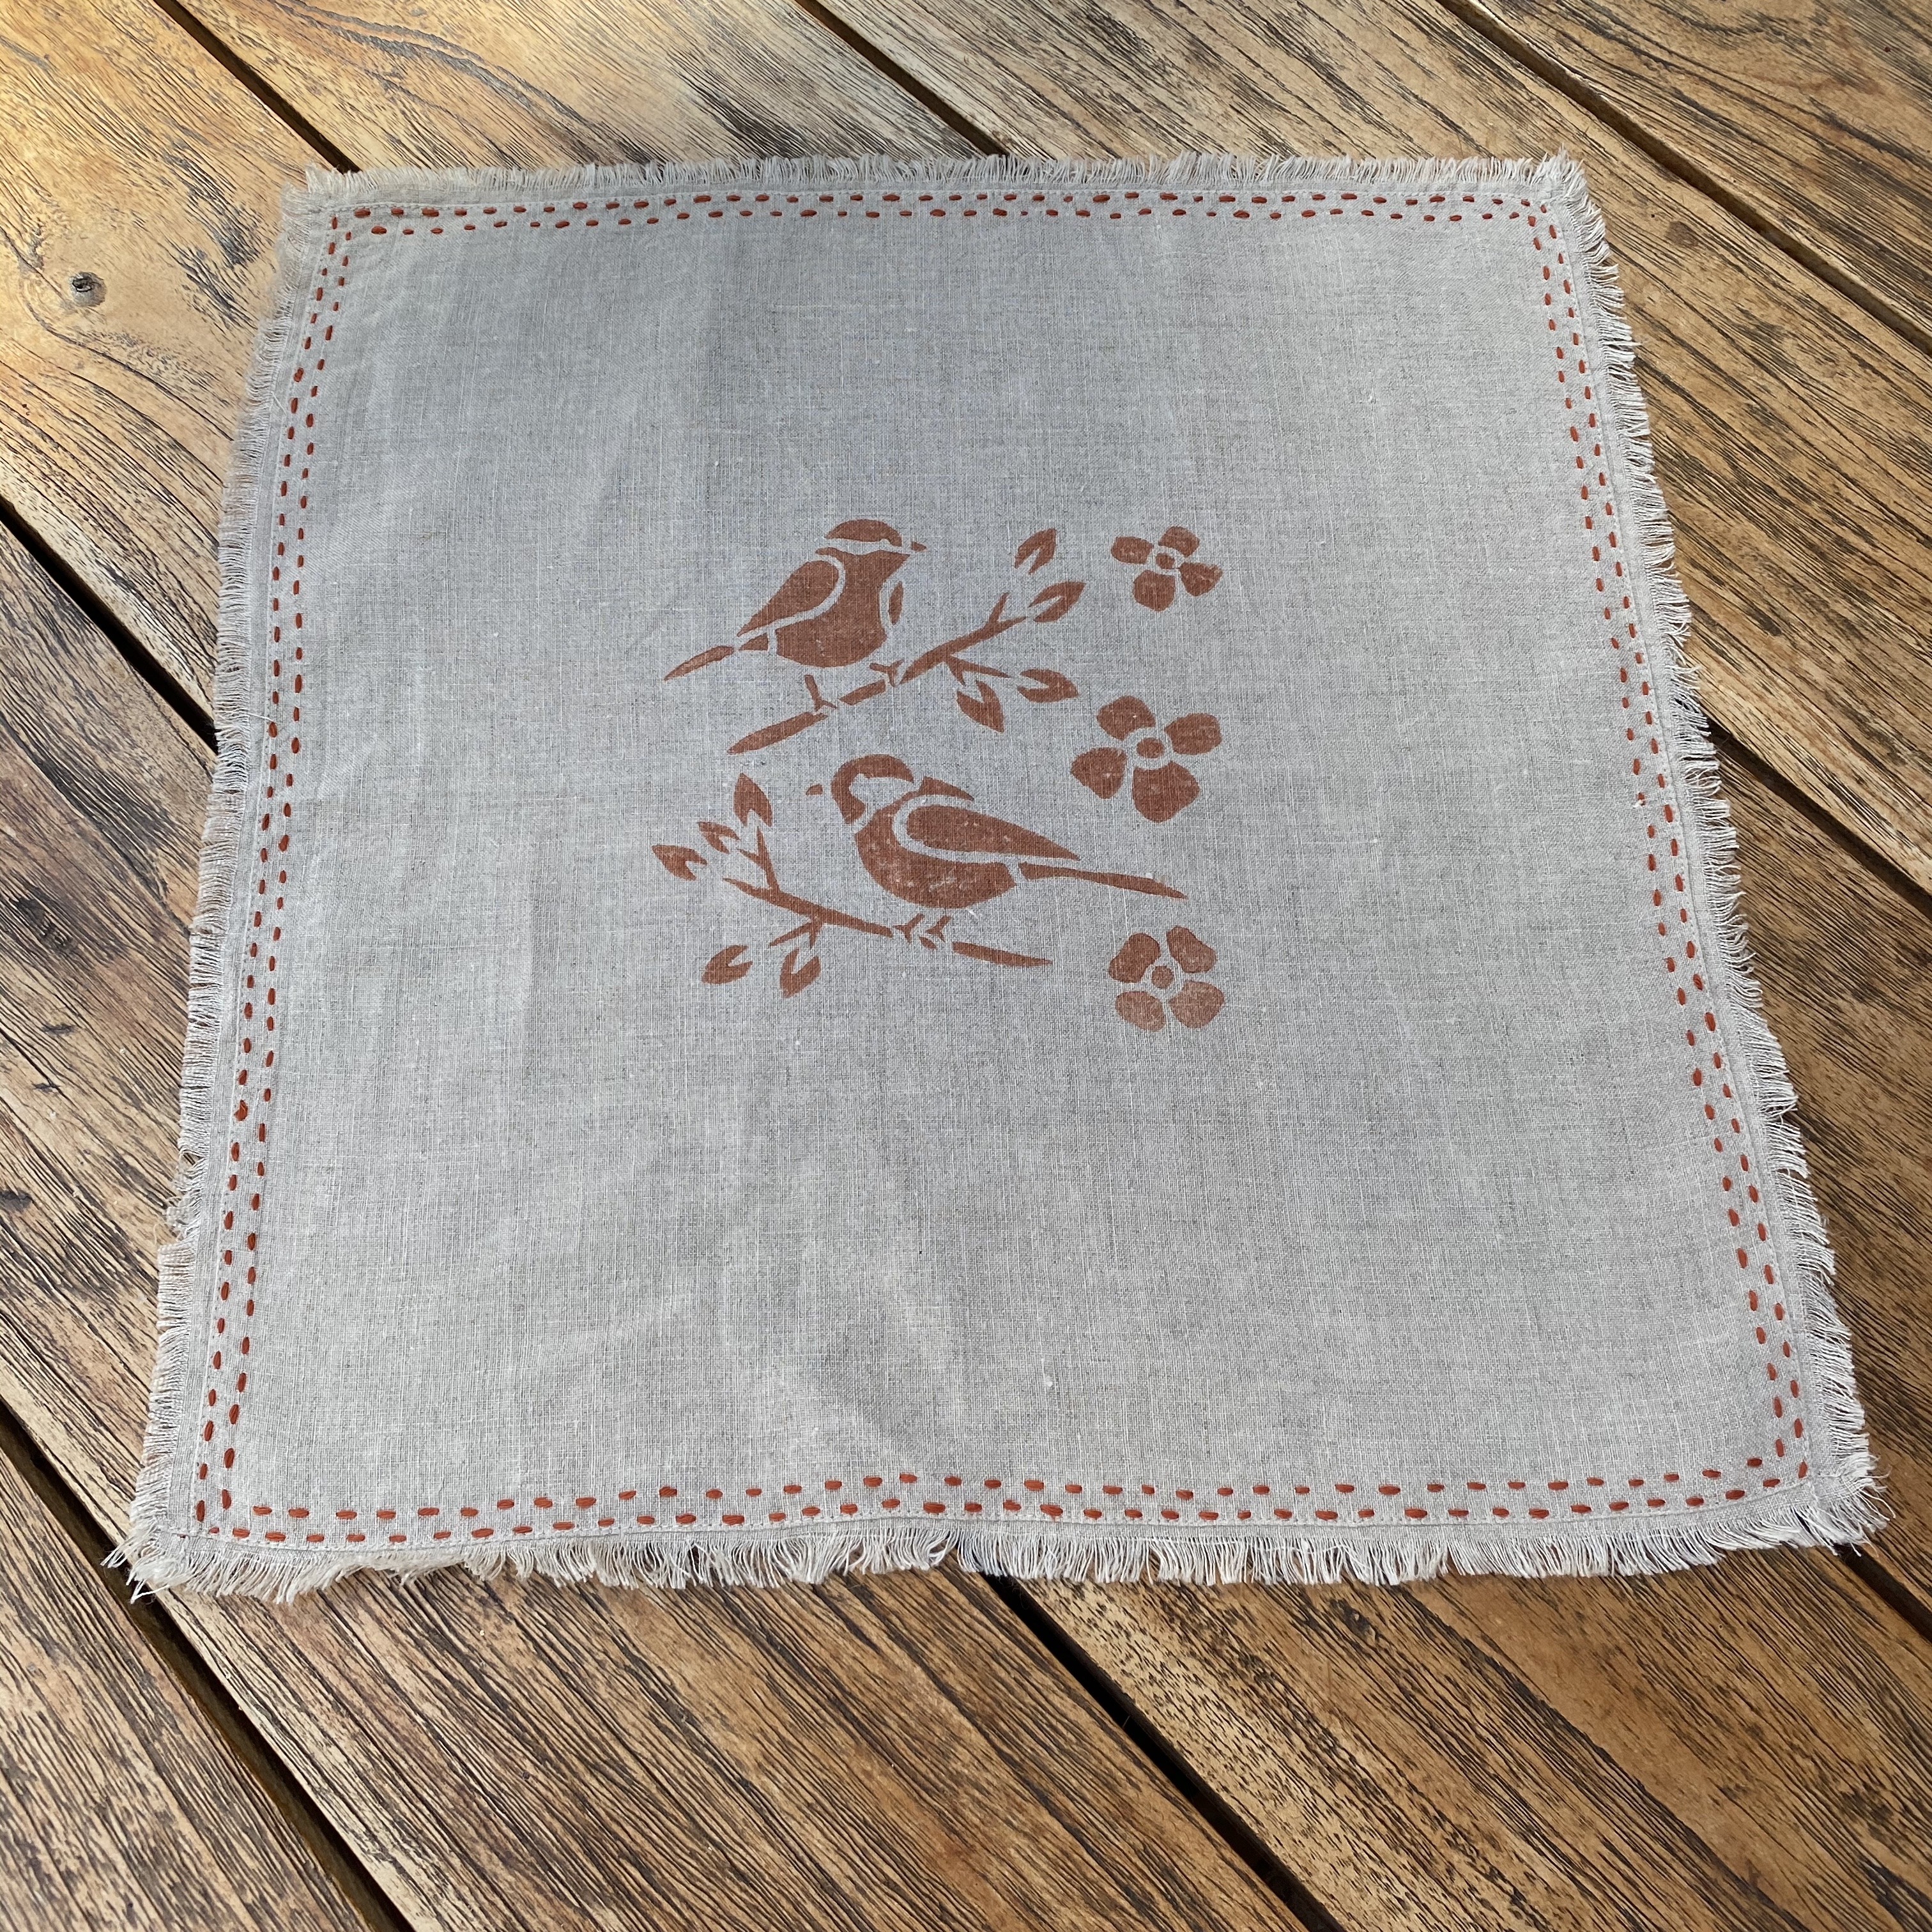 Set of 6 Hand Block Printed Napkins in Burnt Orange